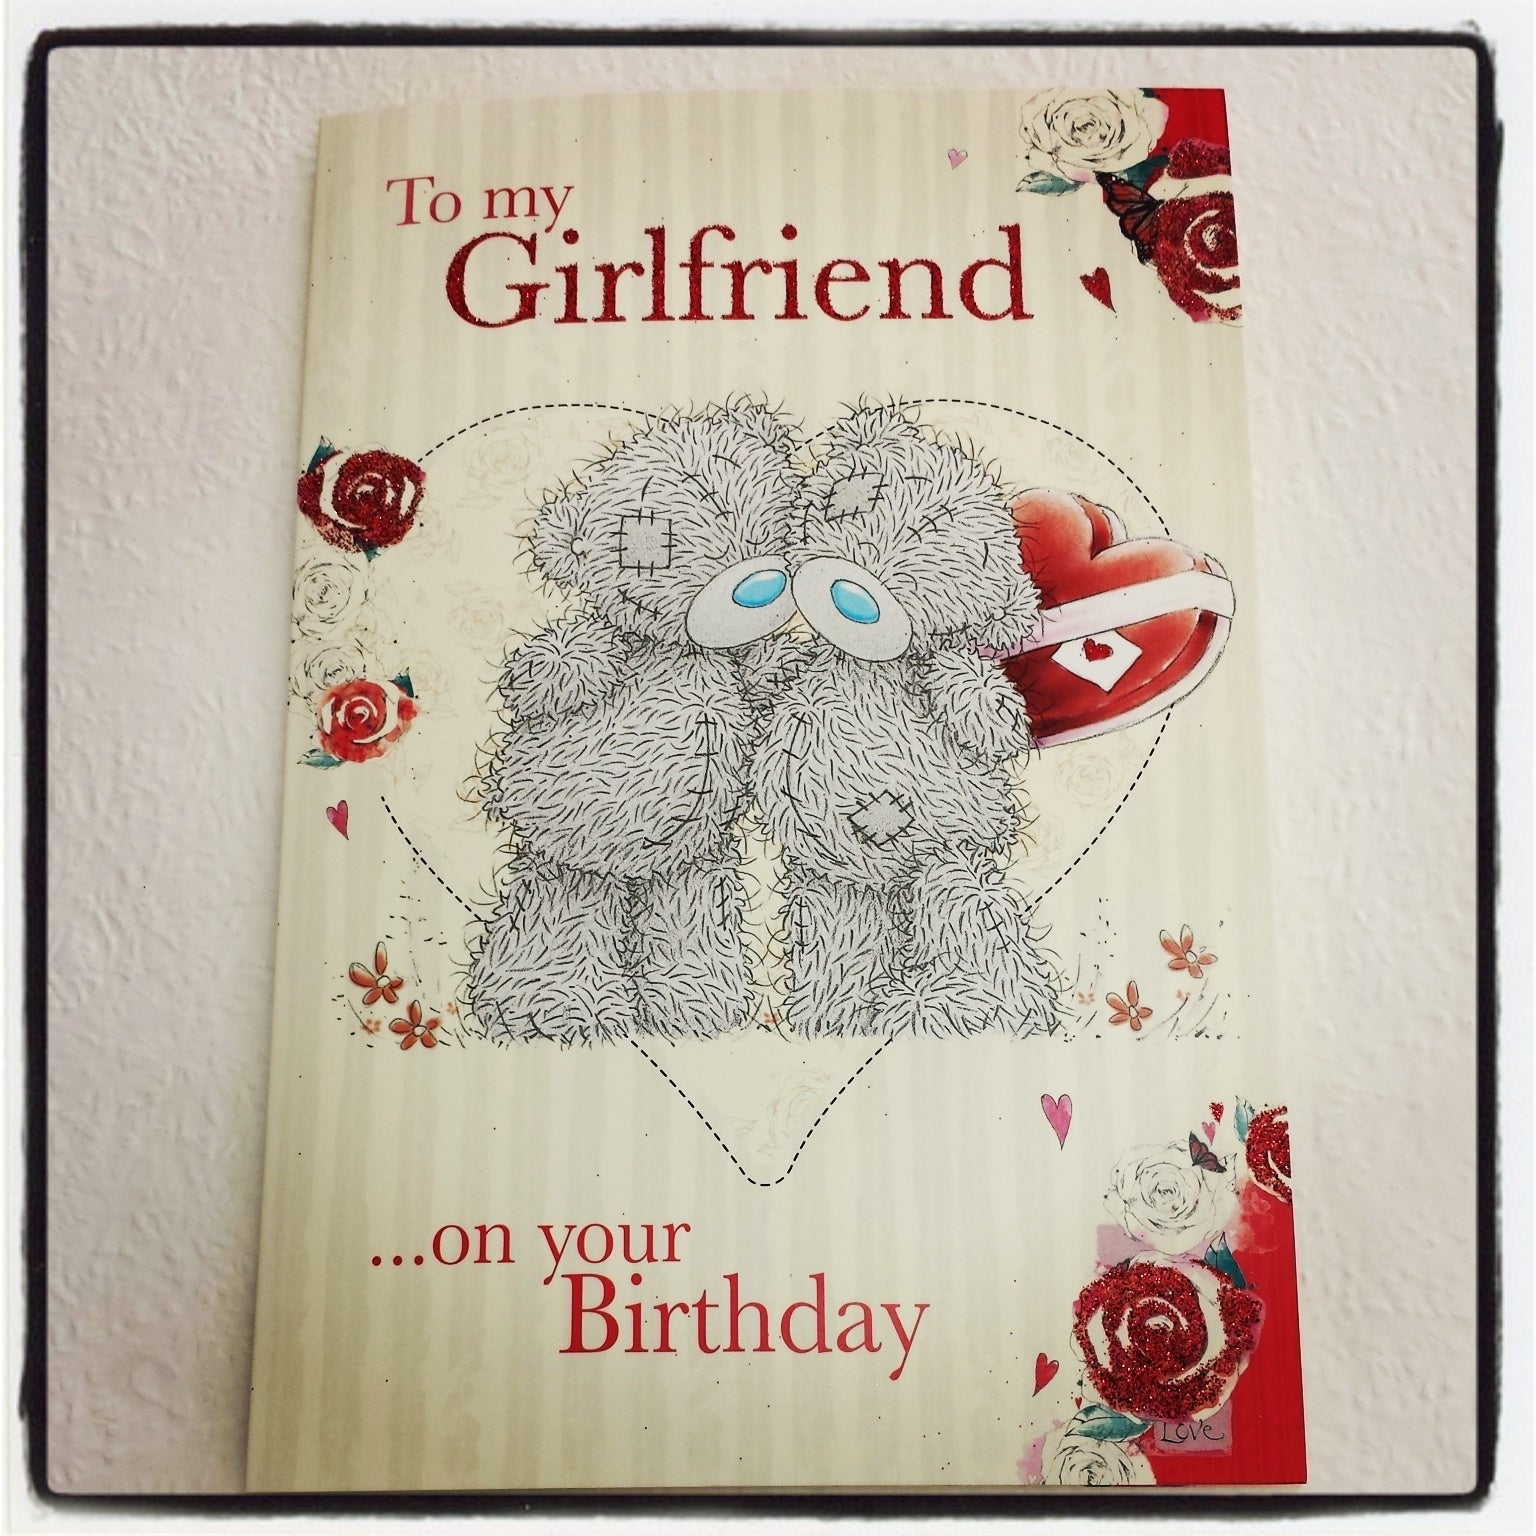 To my Girlfriend Card